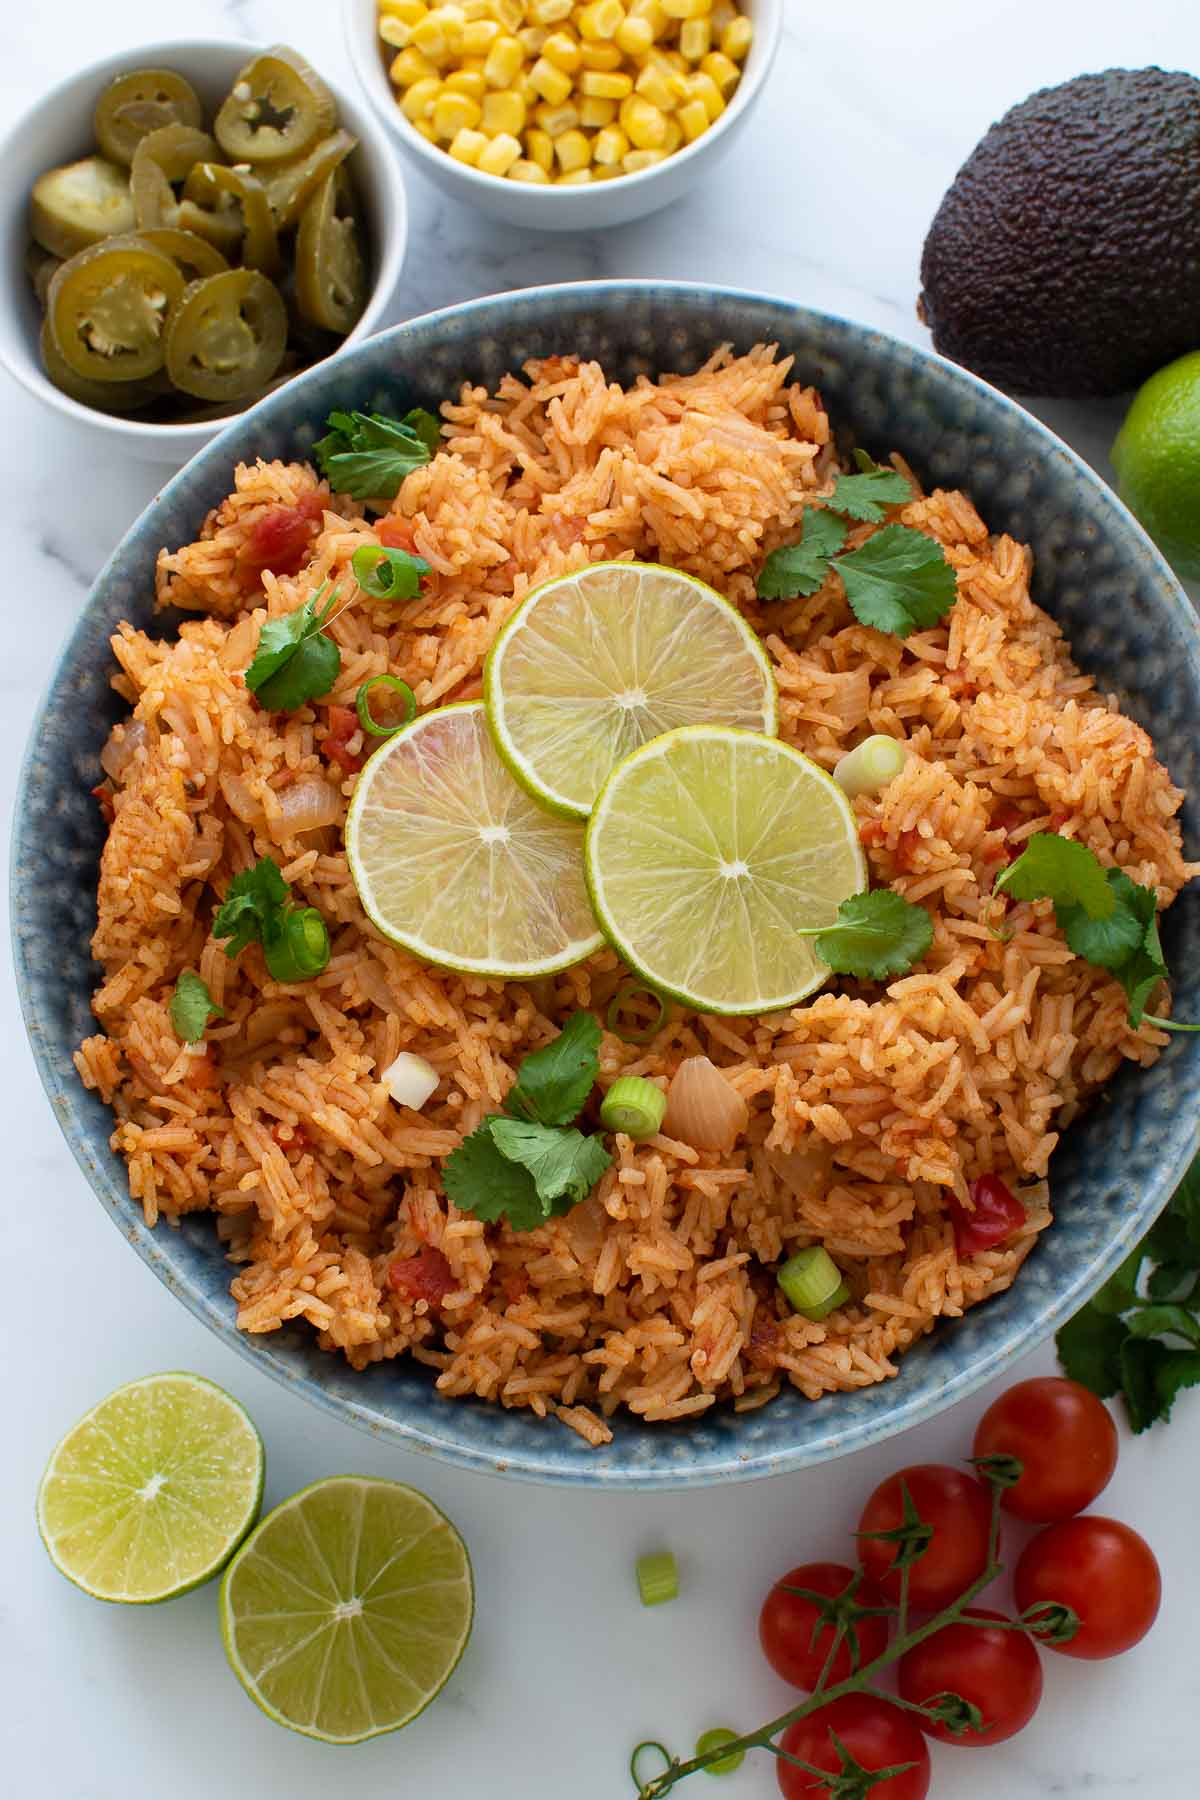 Mexican rice in a bowl, surrounded by sides and garnishes.